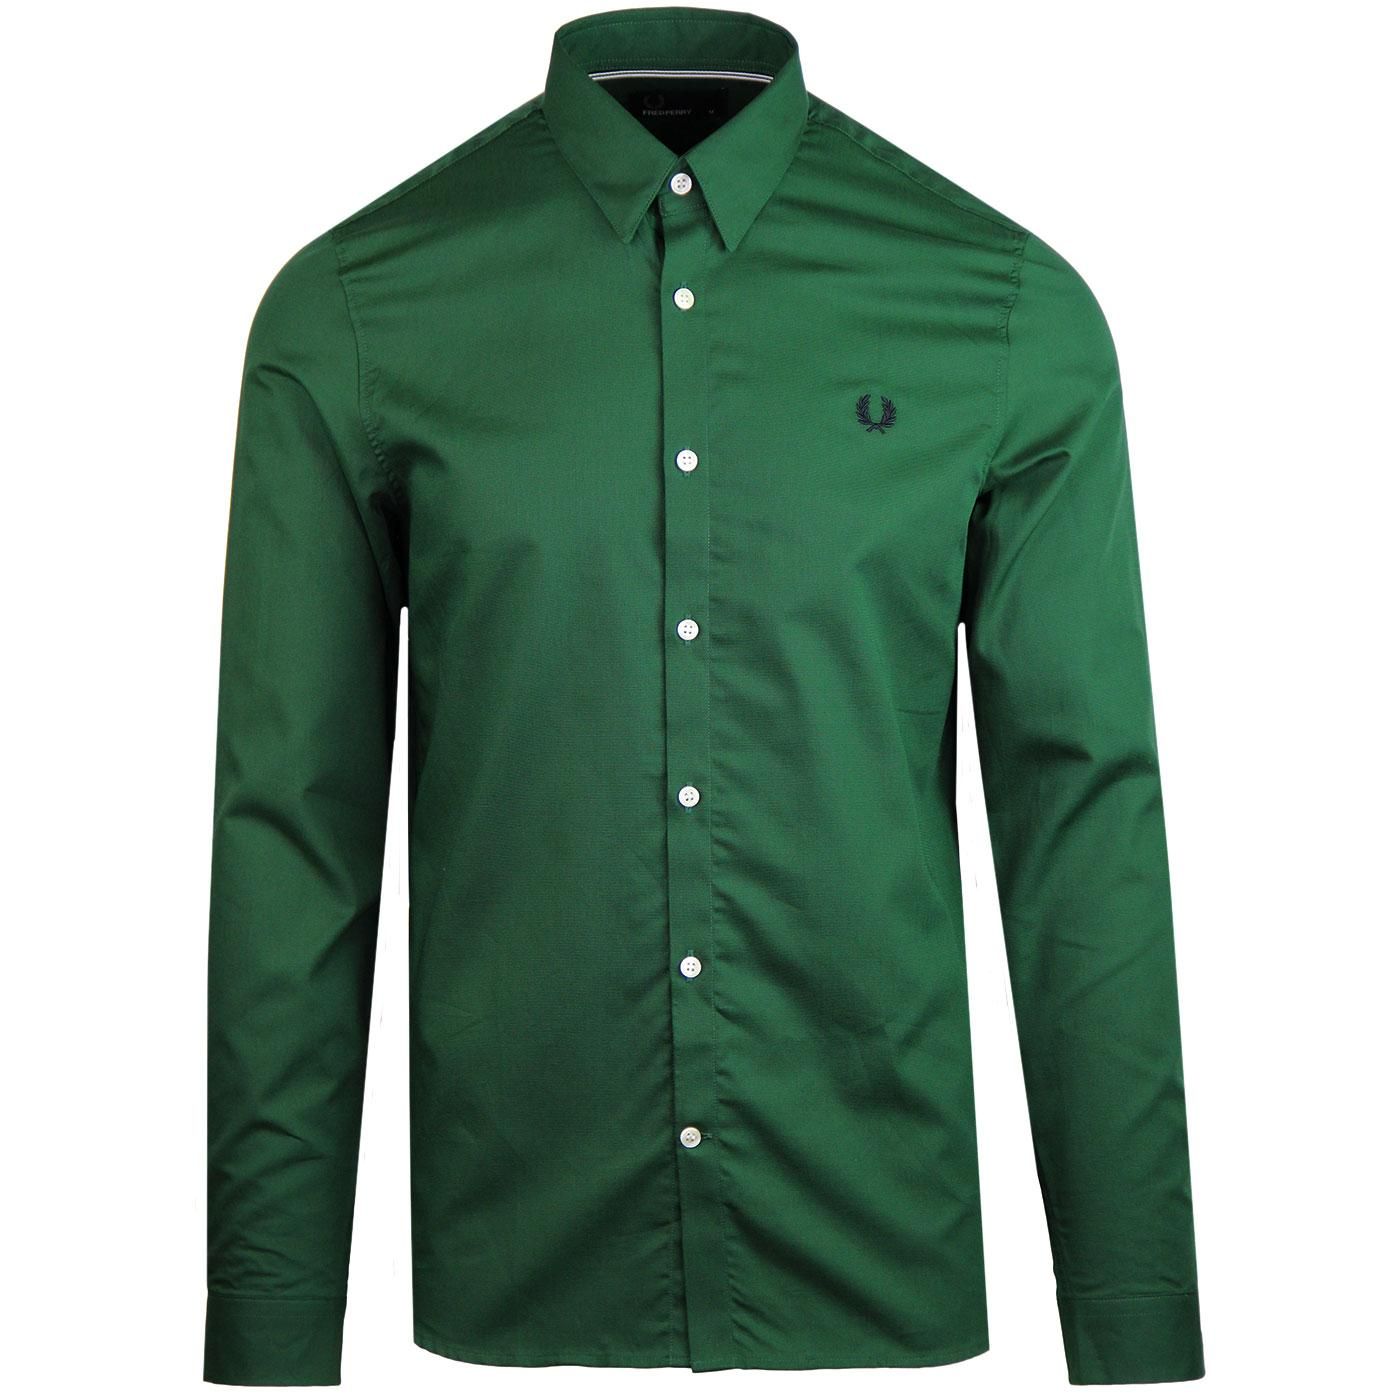 FRED PERRY Mod Button Under Shirt (Tartan Green)